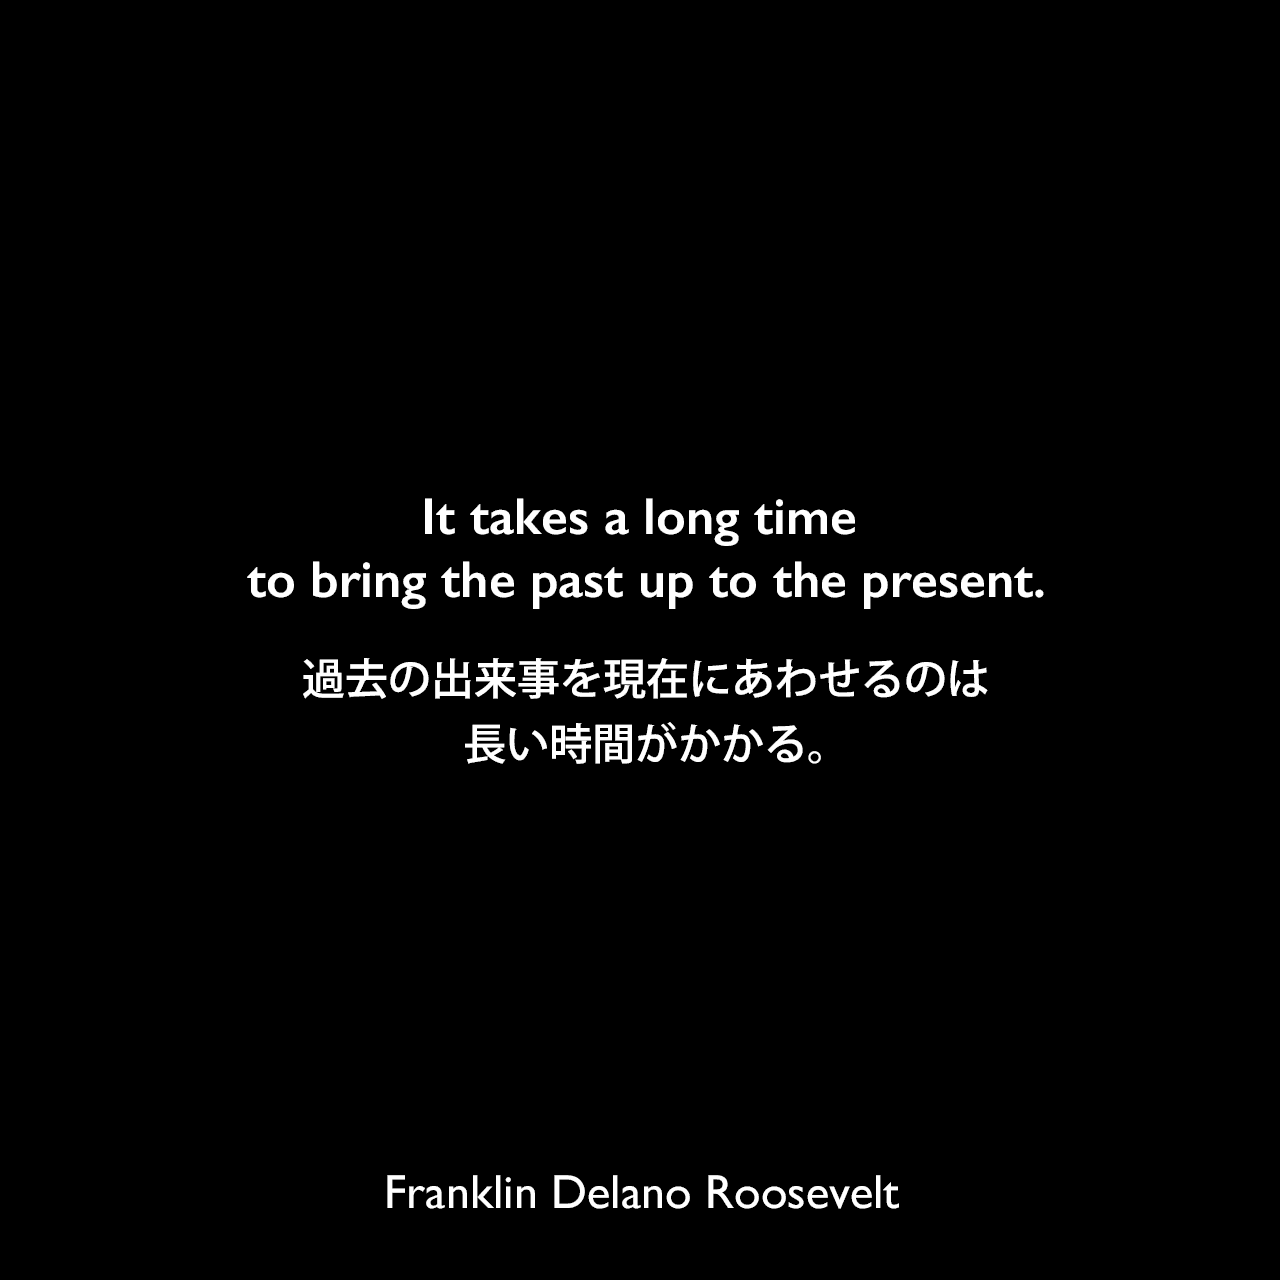 It takes a long time to bring the past up to the present.過去の出来事を現在にあわせるのは長い時間がかかる。Franklin Delano Roosevelt